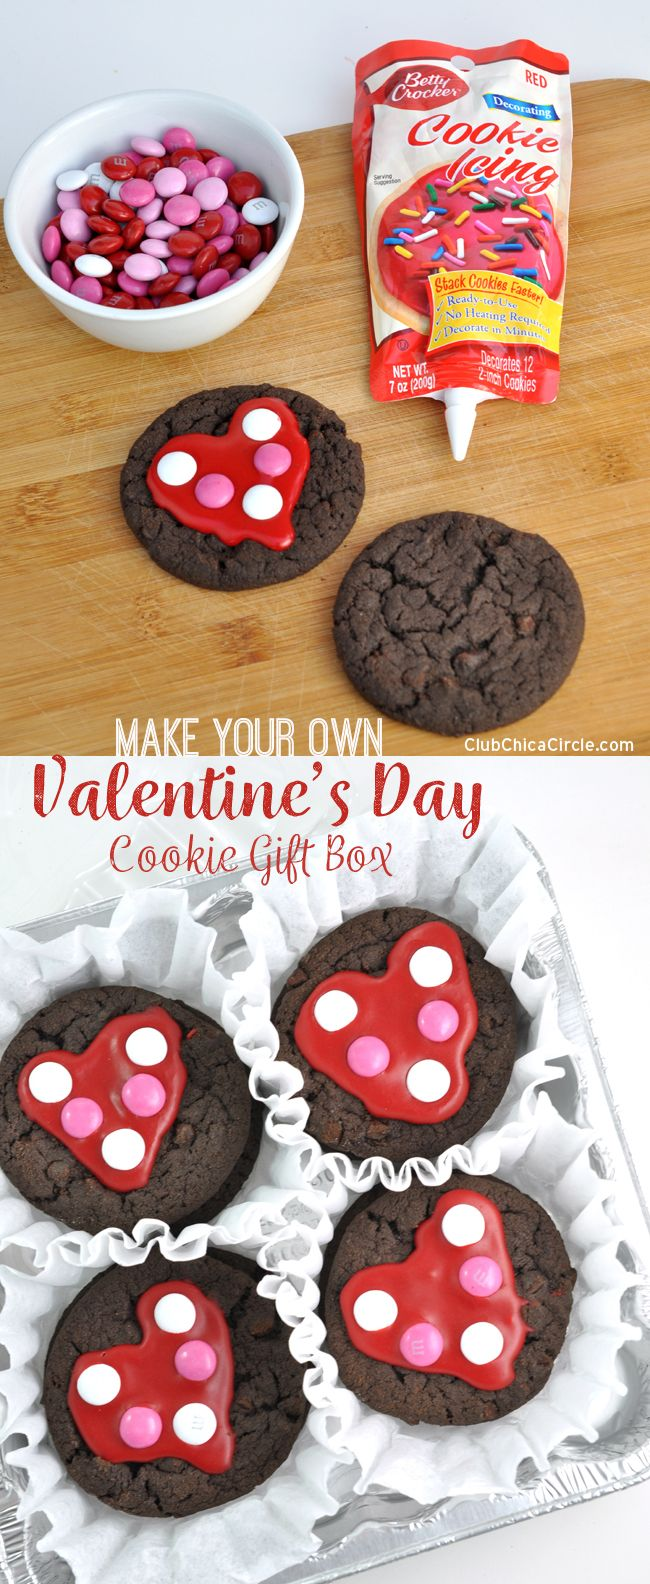 Gift wrapping ideas for home made baked goods -  For Valentine S Day Turn Ordinary Cookies Into Super Cute Polka Dot Heart Cookies And Wrap Up For The Perfect Homemade Gift Idea For Valentine S Day